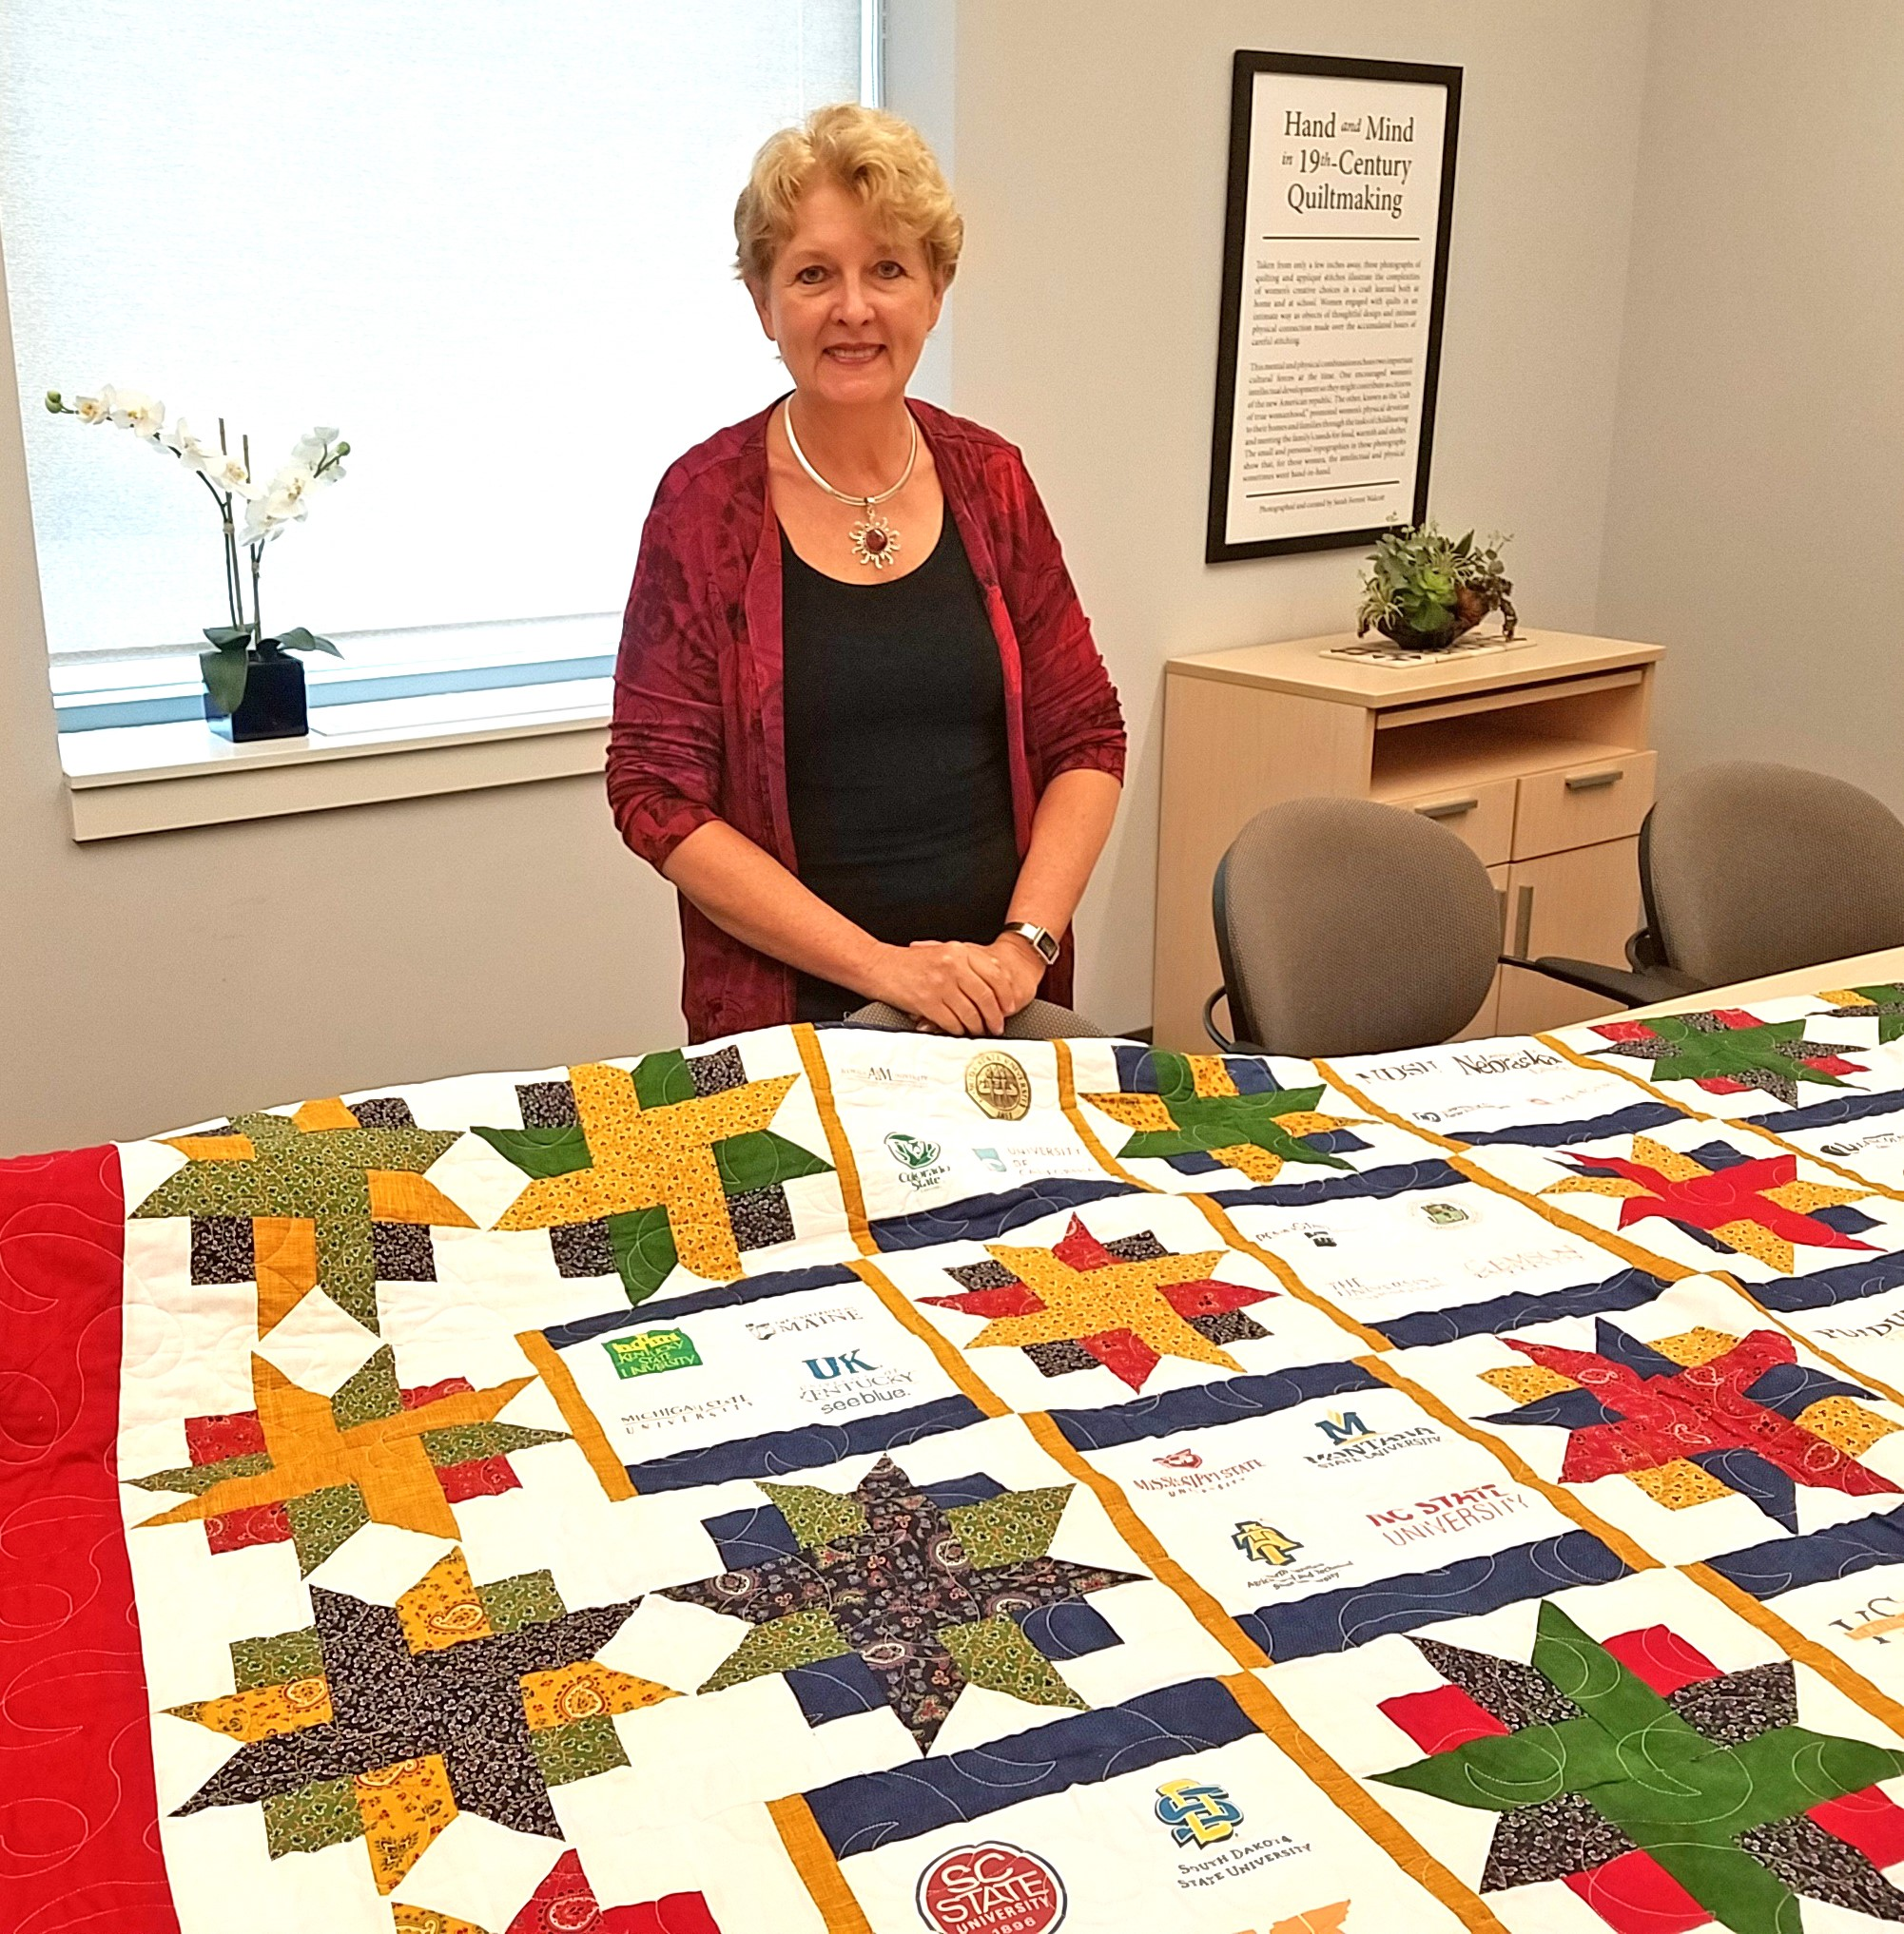 Dr. Jane Schuchardt with the quilt made in her honor by Dr. Michelle Rodgers of the University of Delaware Extension.